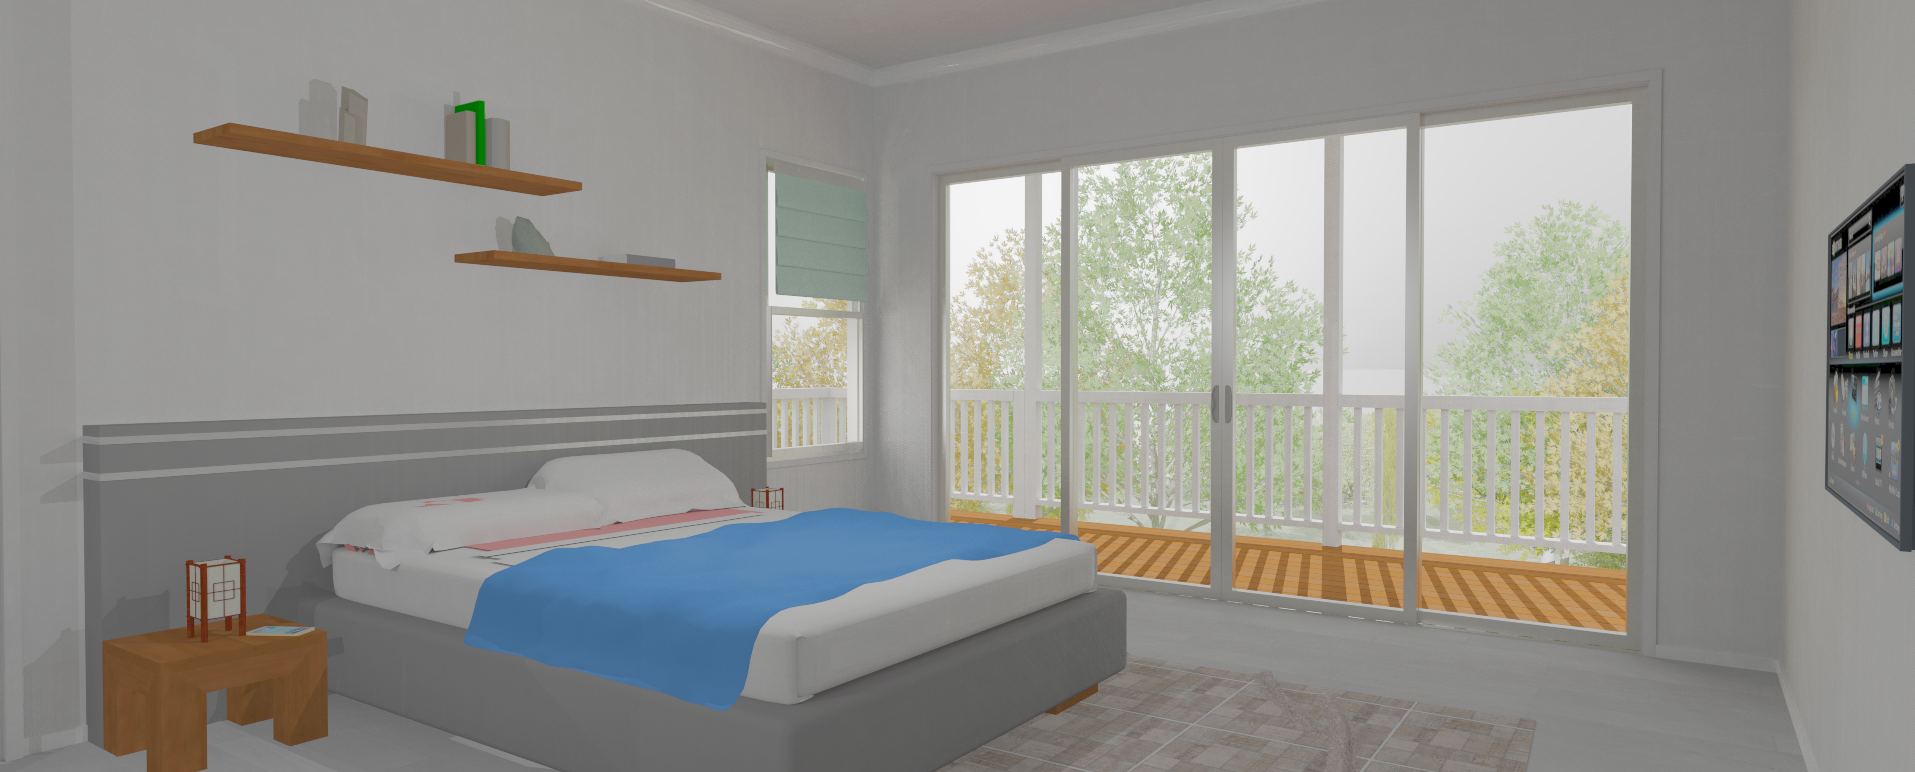 Buderim v1.2 bedroom